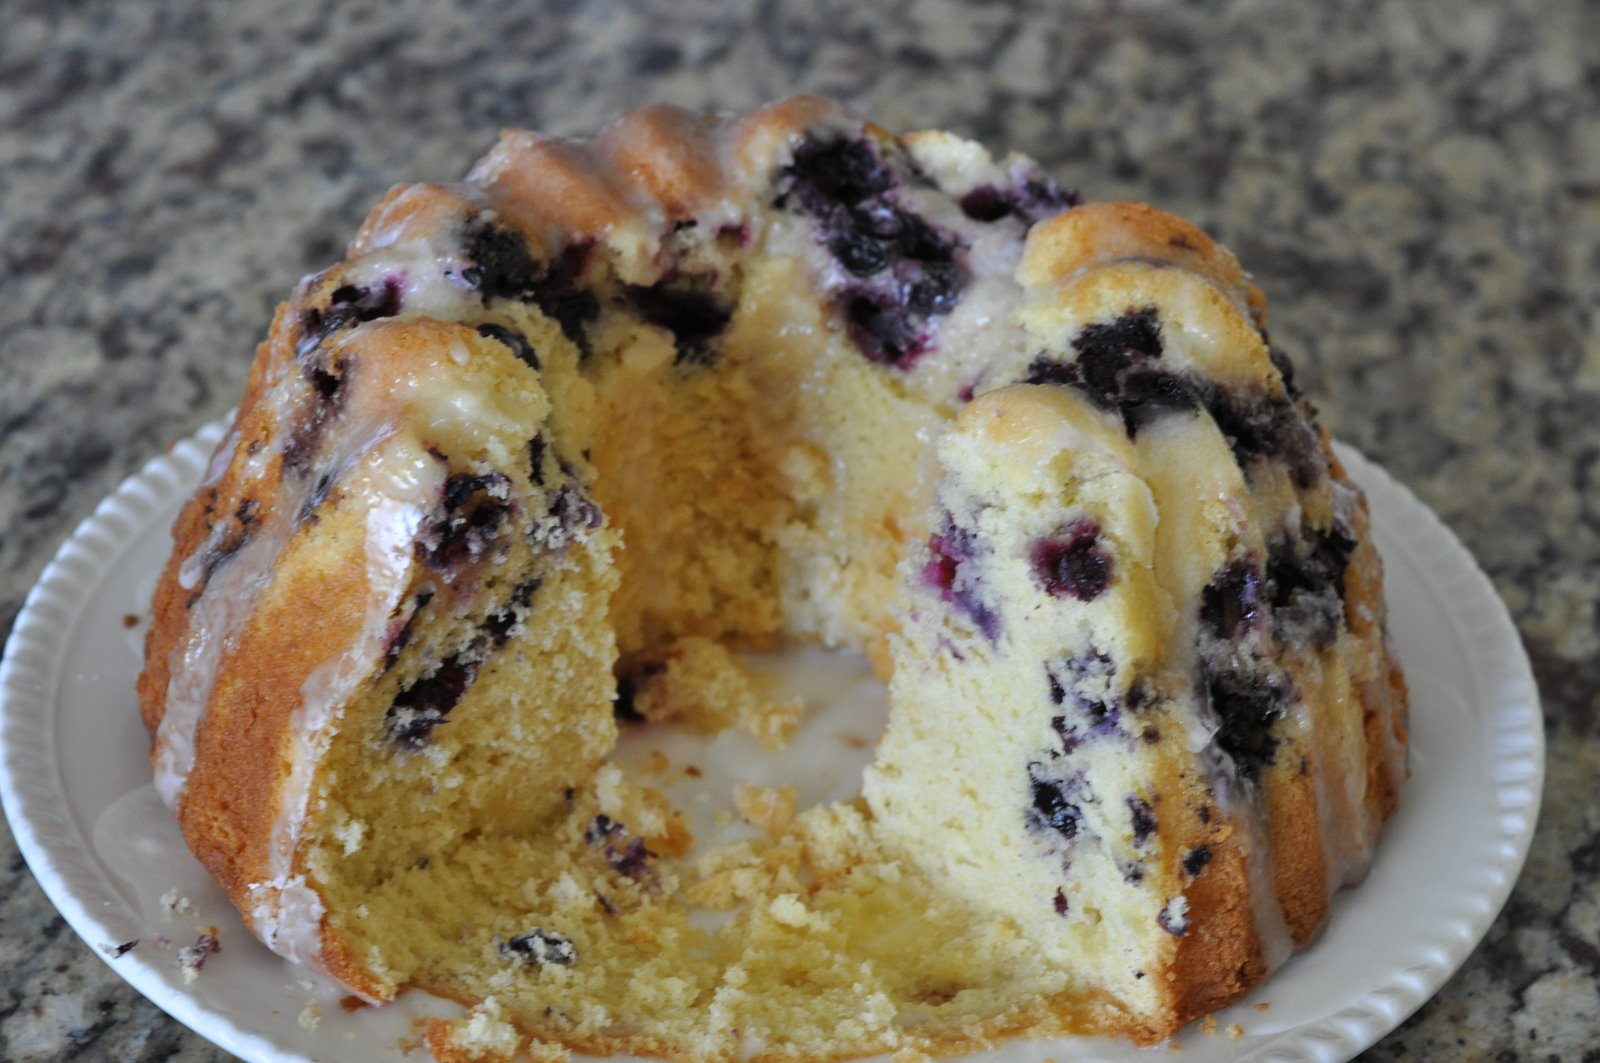 Sunday Share: Best Lemon Blueberry Bundt Cake